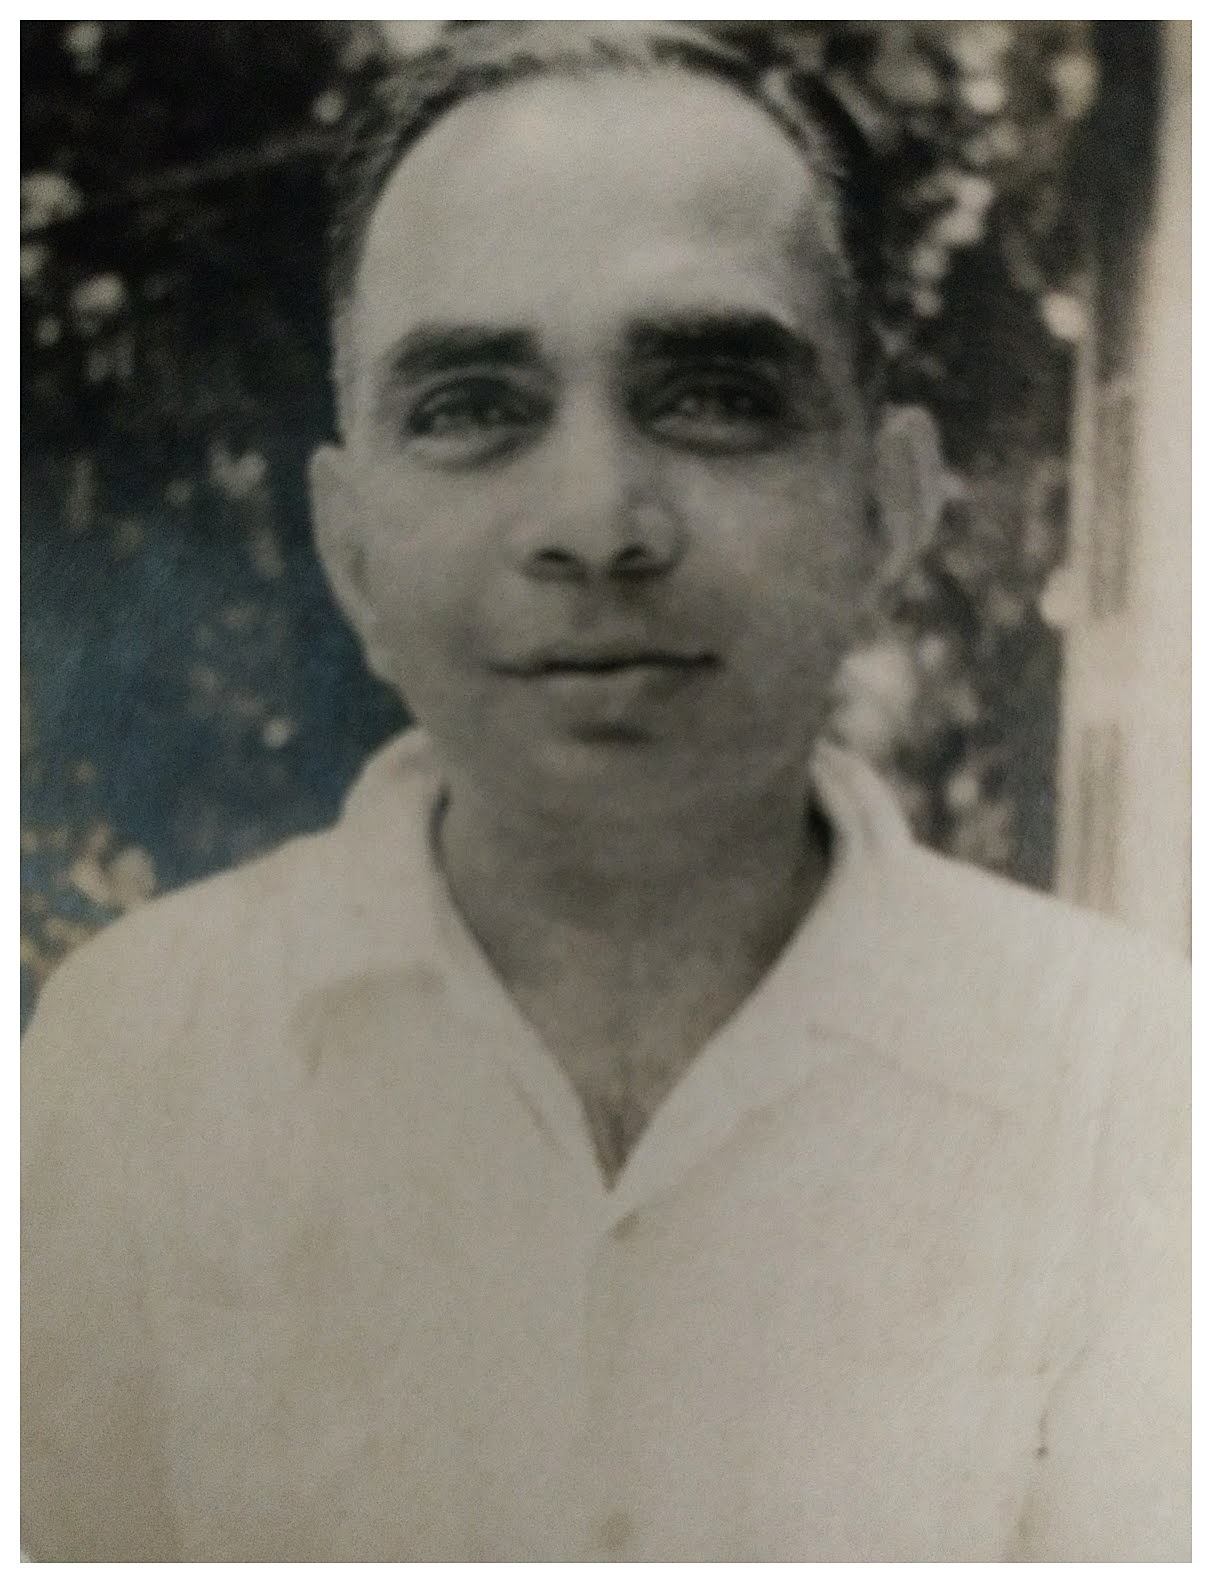 R Madhavan Nayar -  Shri R Madhavan Nayar was a pioneer in business, industry, art, history, sports and philanthropy. With early training in classical music and dance, history and art he always stressed the importance of education in alternative streams.